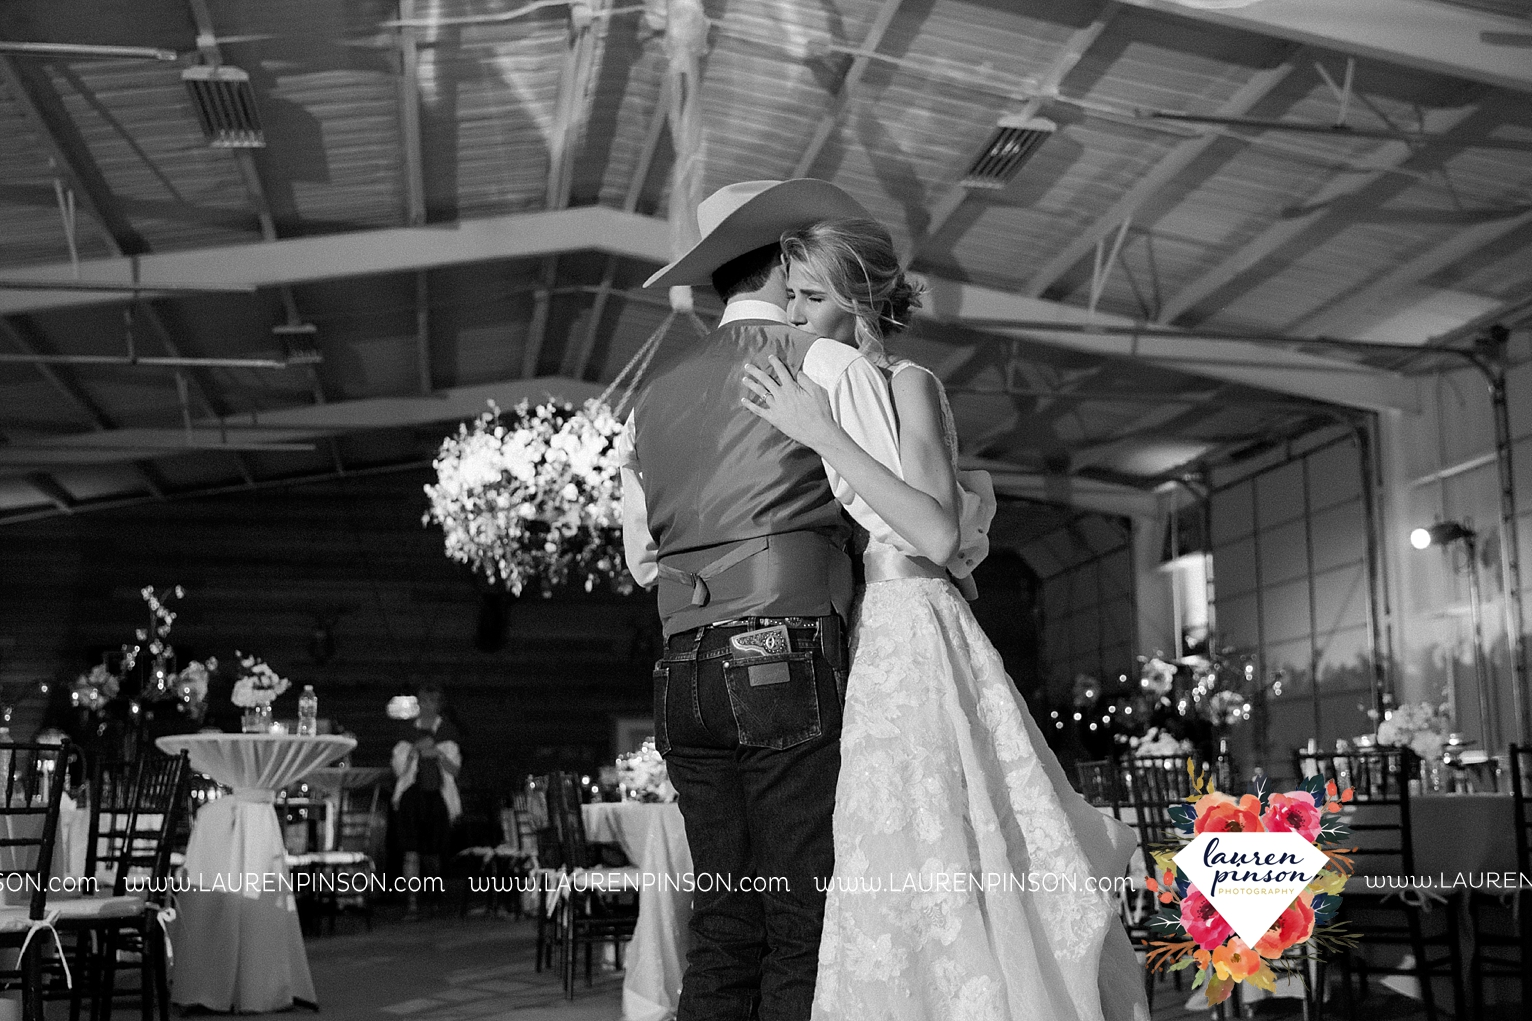 wichita-falls-texas-wedding-photographer-bowie-nocona-henrietta-country-barn-wedding_2216.jpg